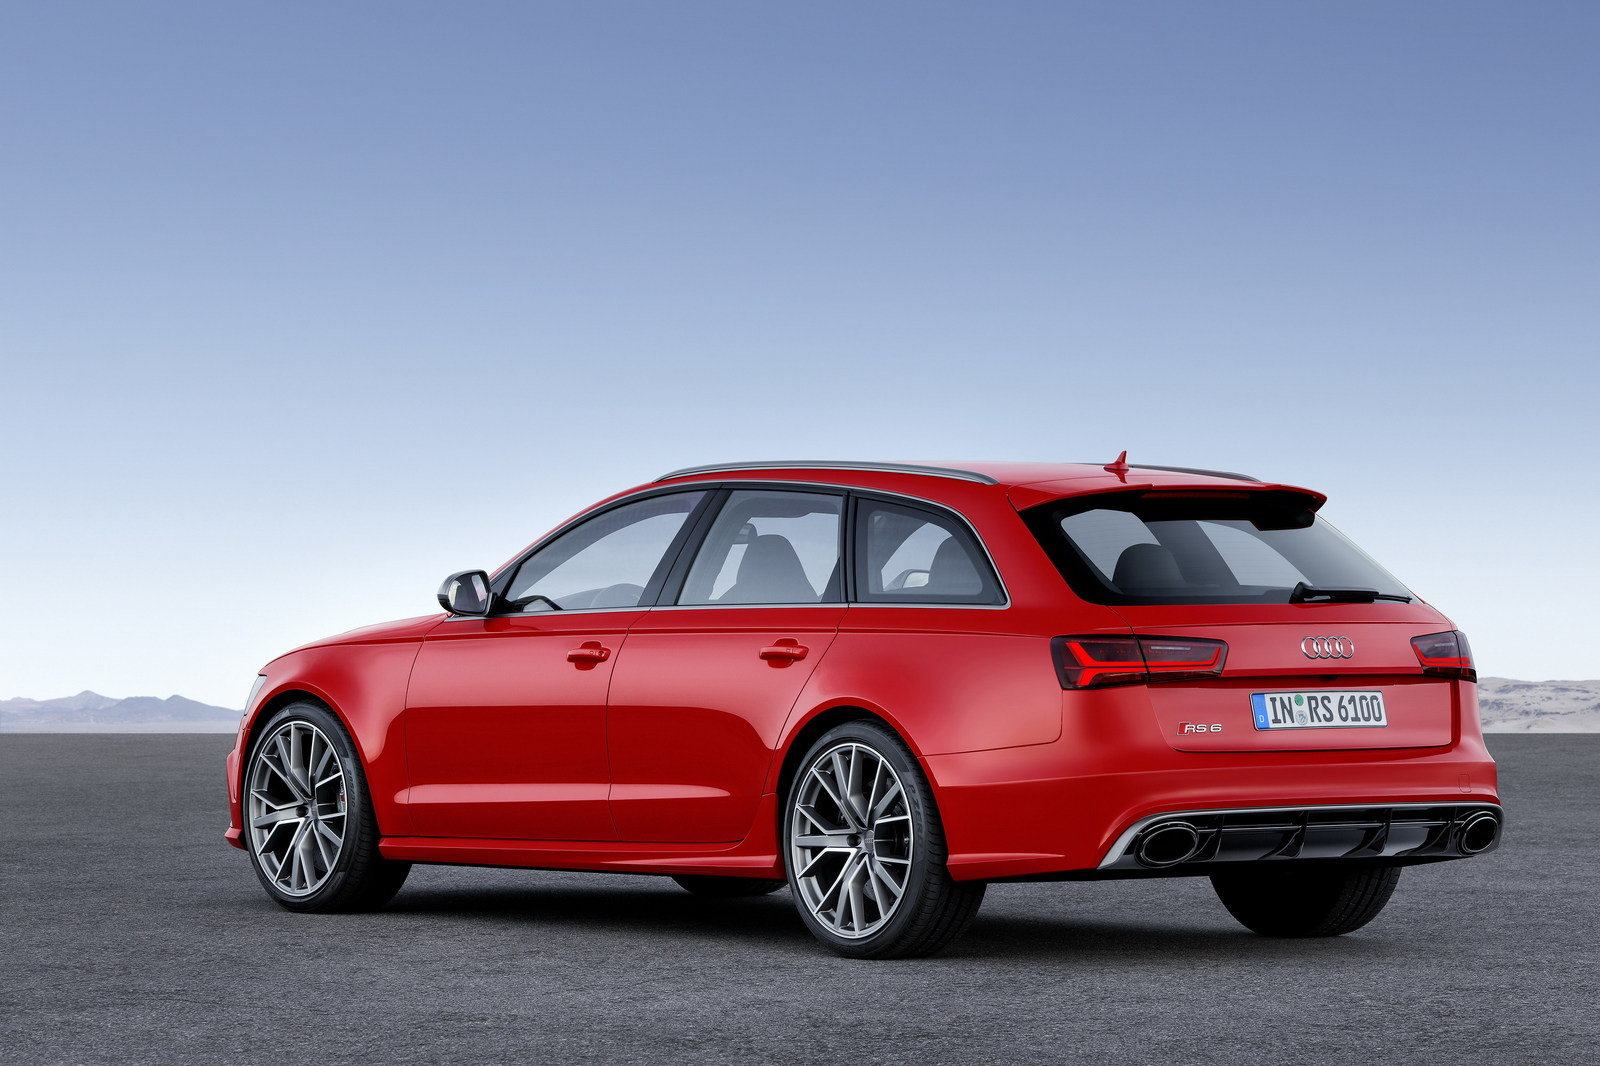 2016 audi rs6 avant performance picture 652322 car review top speed. Black Bedroom Furniture Sets. Home Design Ideas